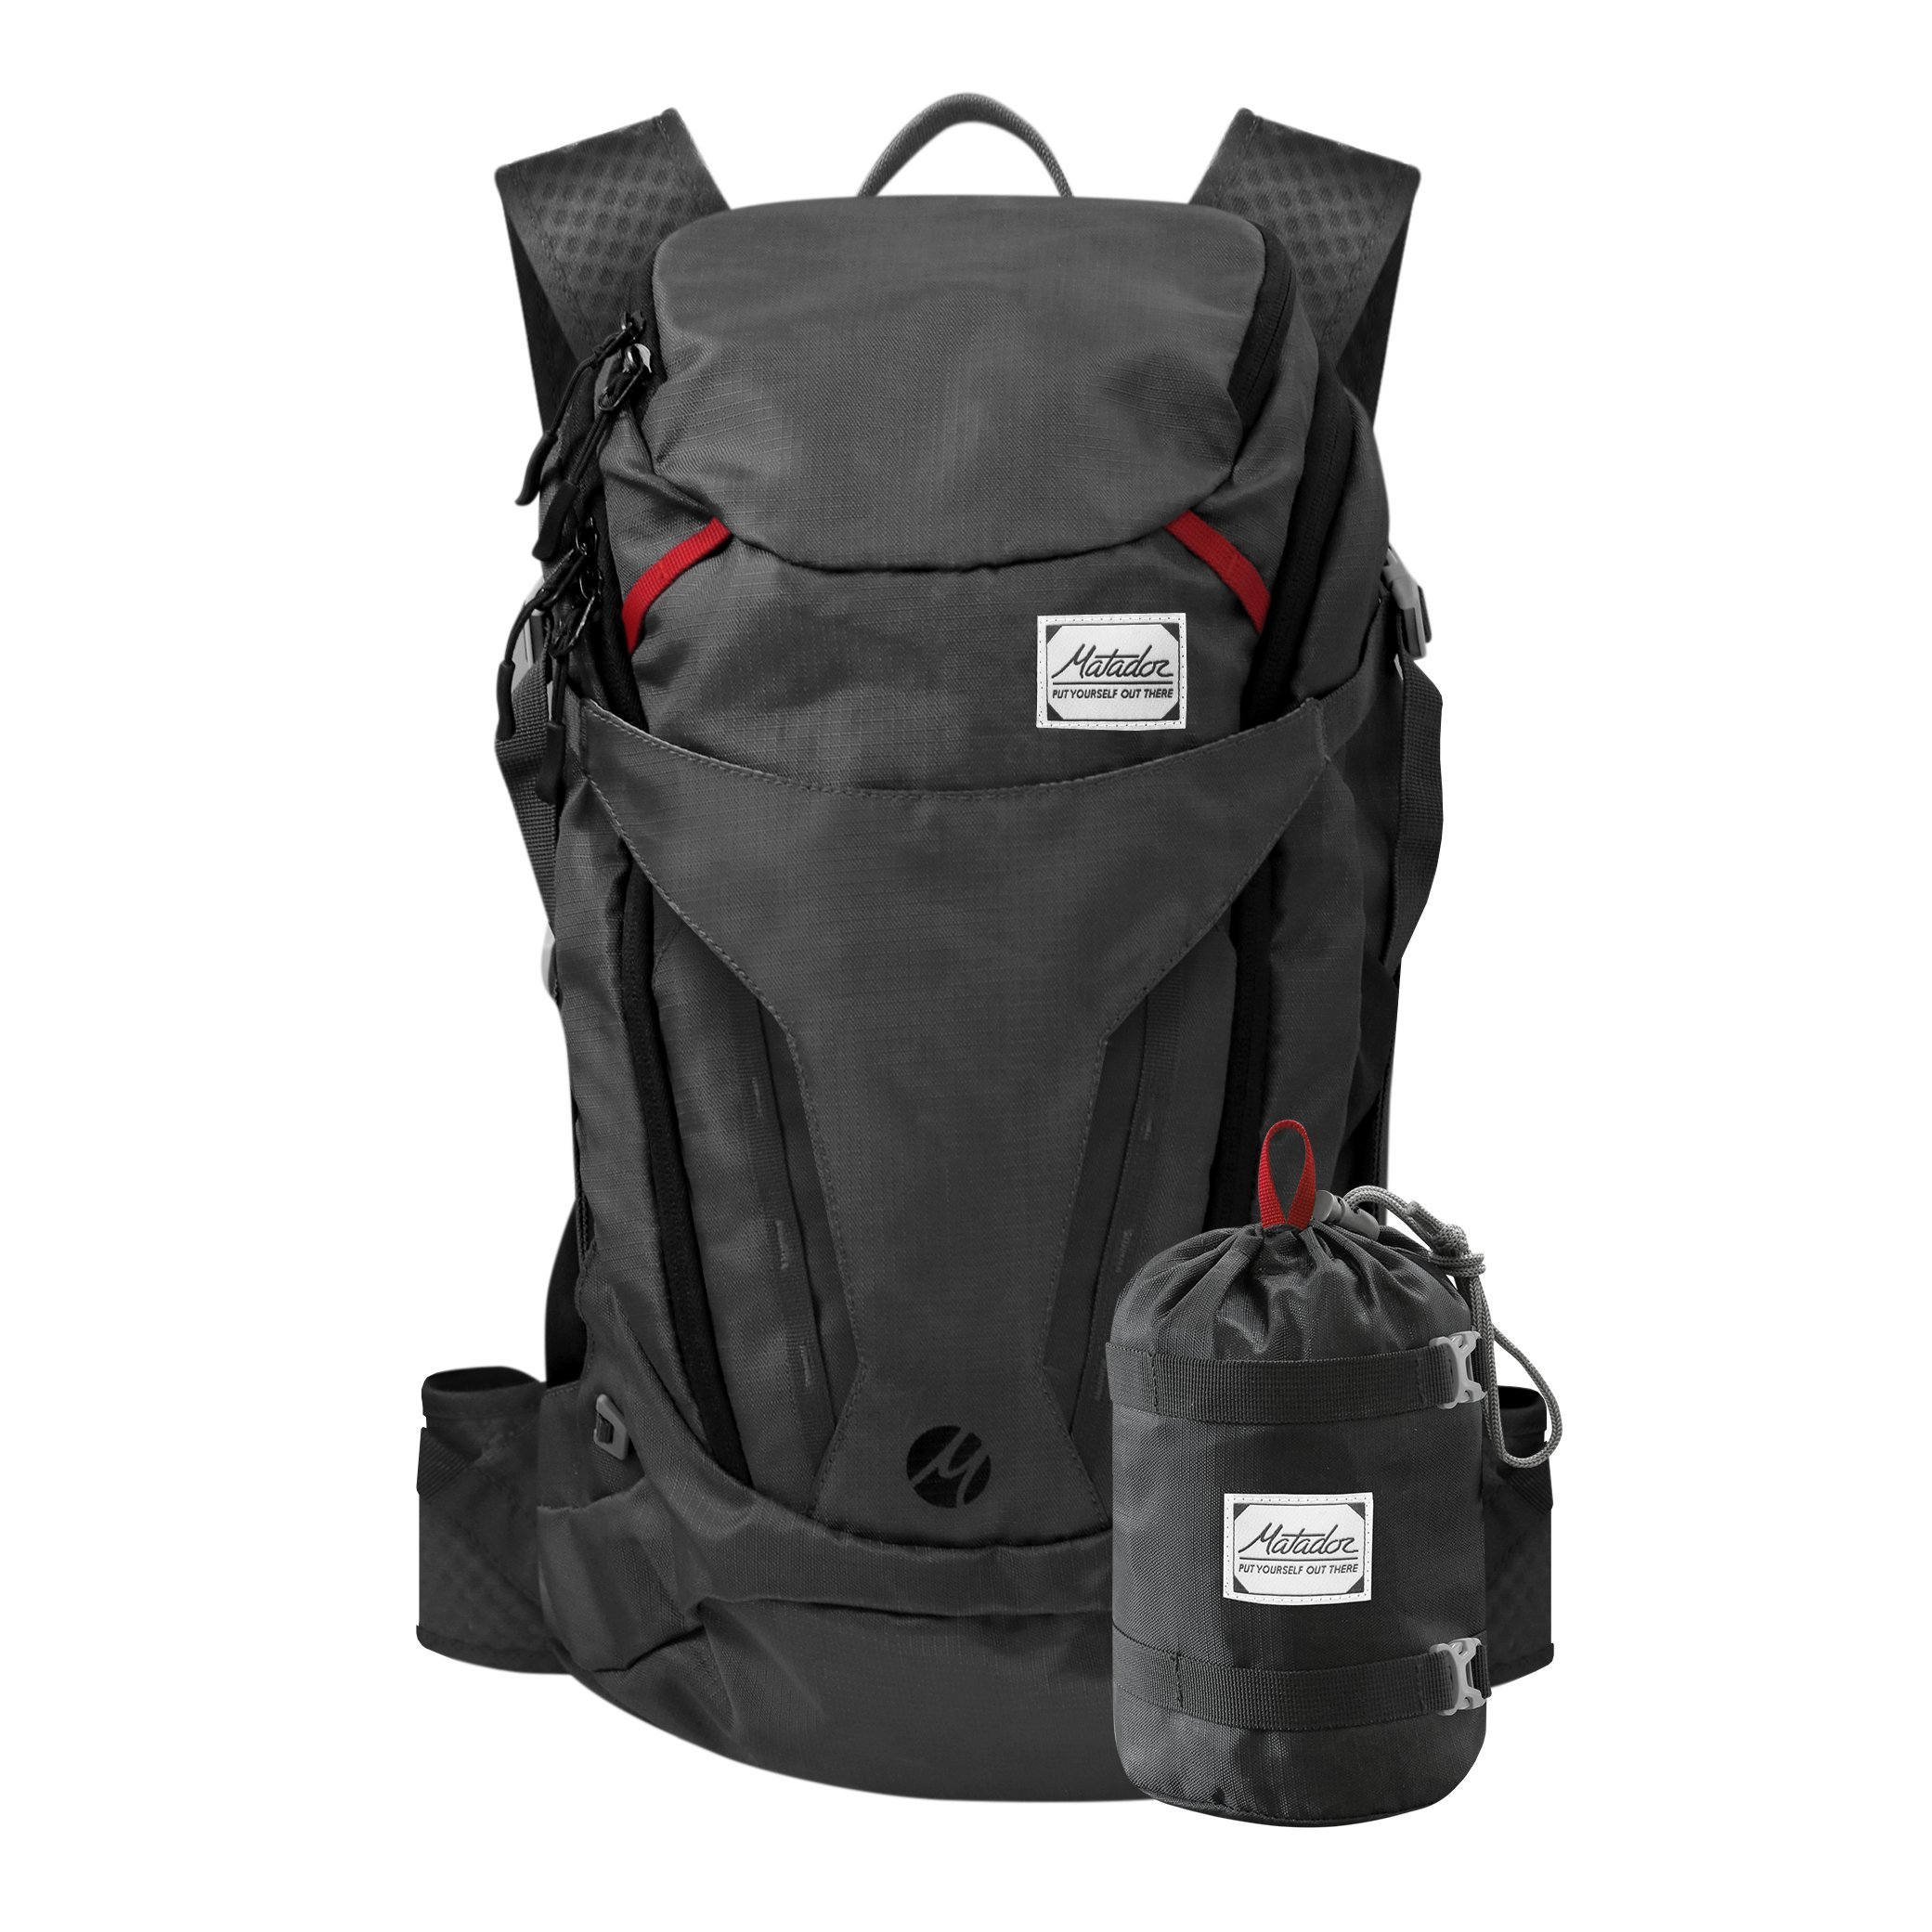 Matador Beast 28 Liter Full Size Packable Technical Backpack Grey by Matador